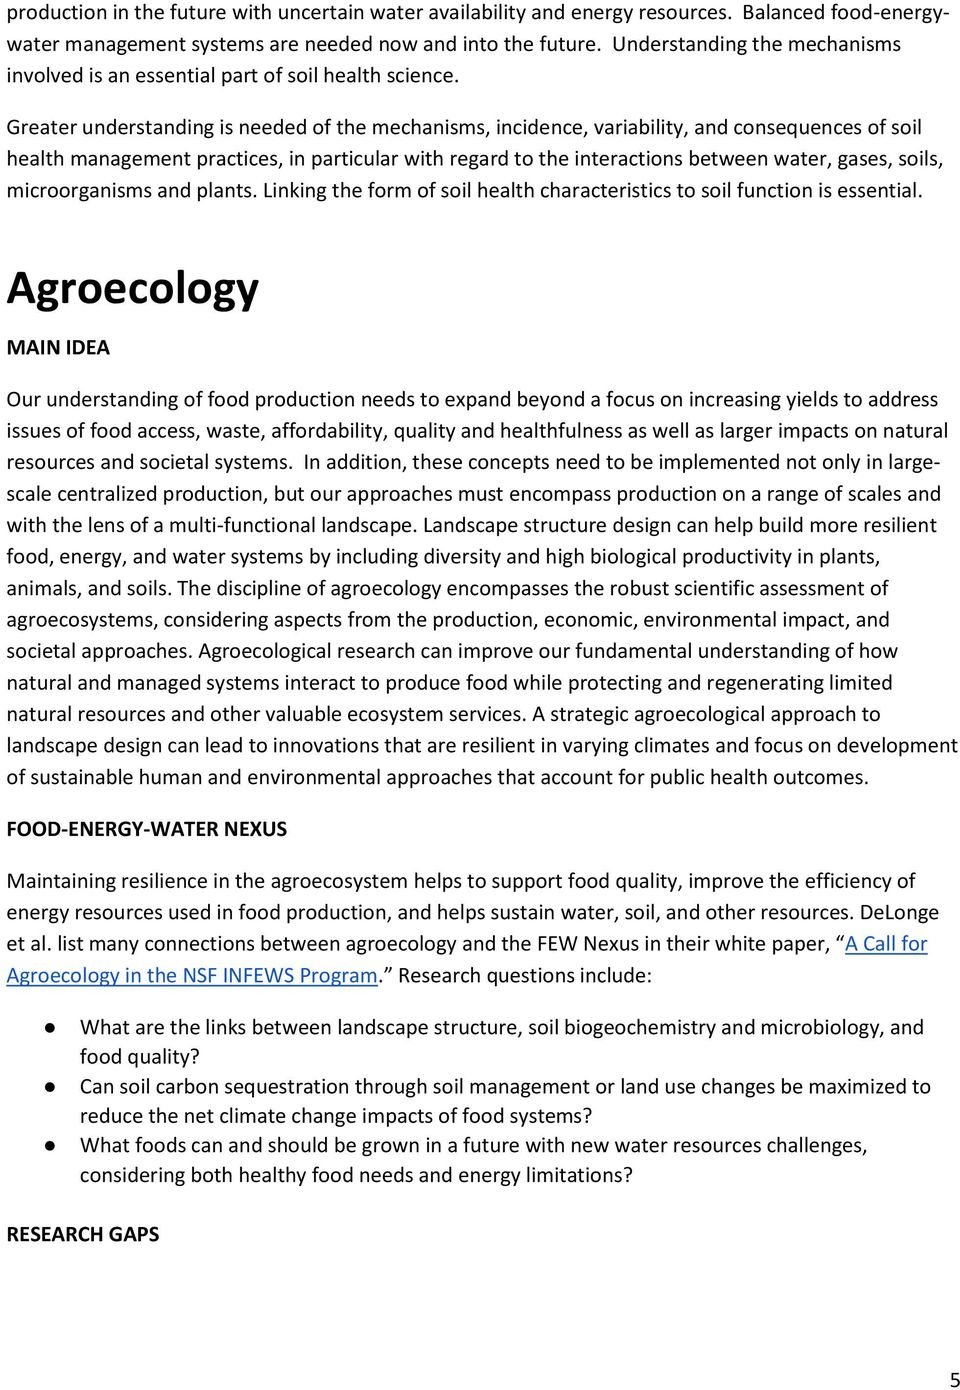 Greater understanding is needed of the mechanisms, incidence, variability, and consequences of soil health management practices, in particular with regard to the interactions between water, gases,